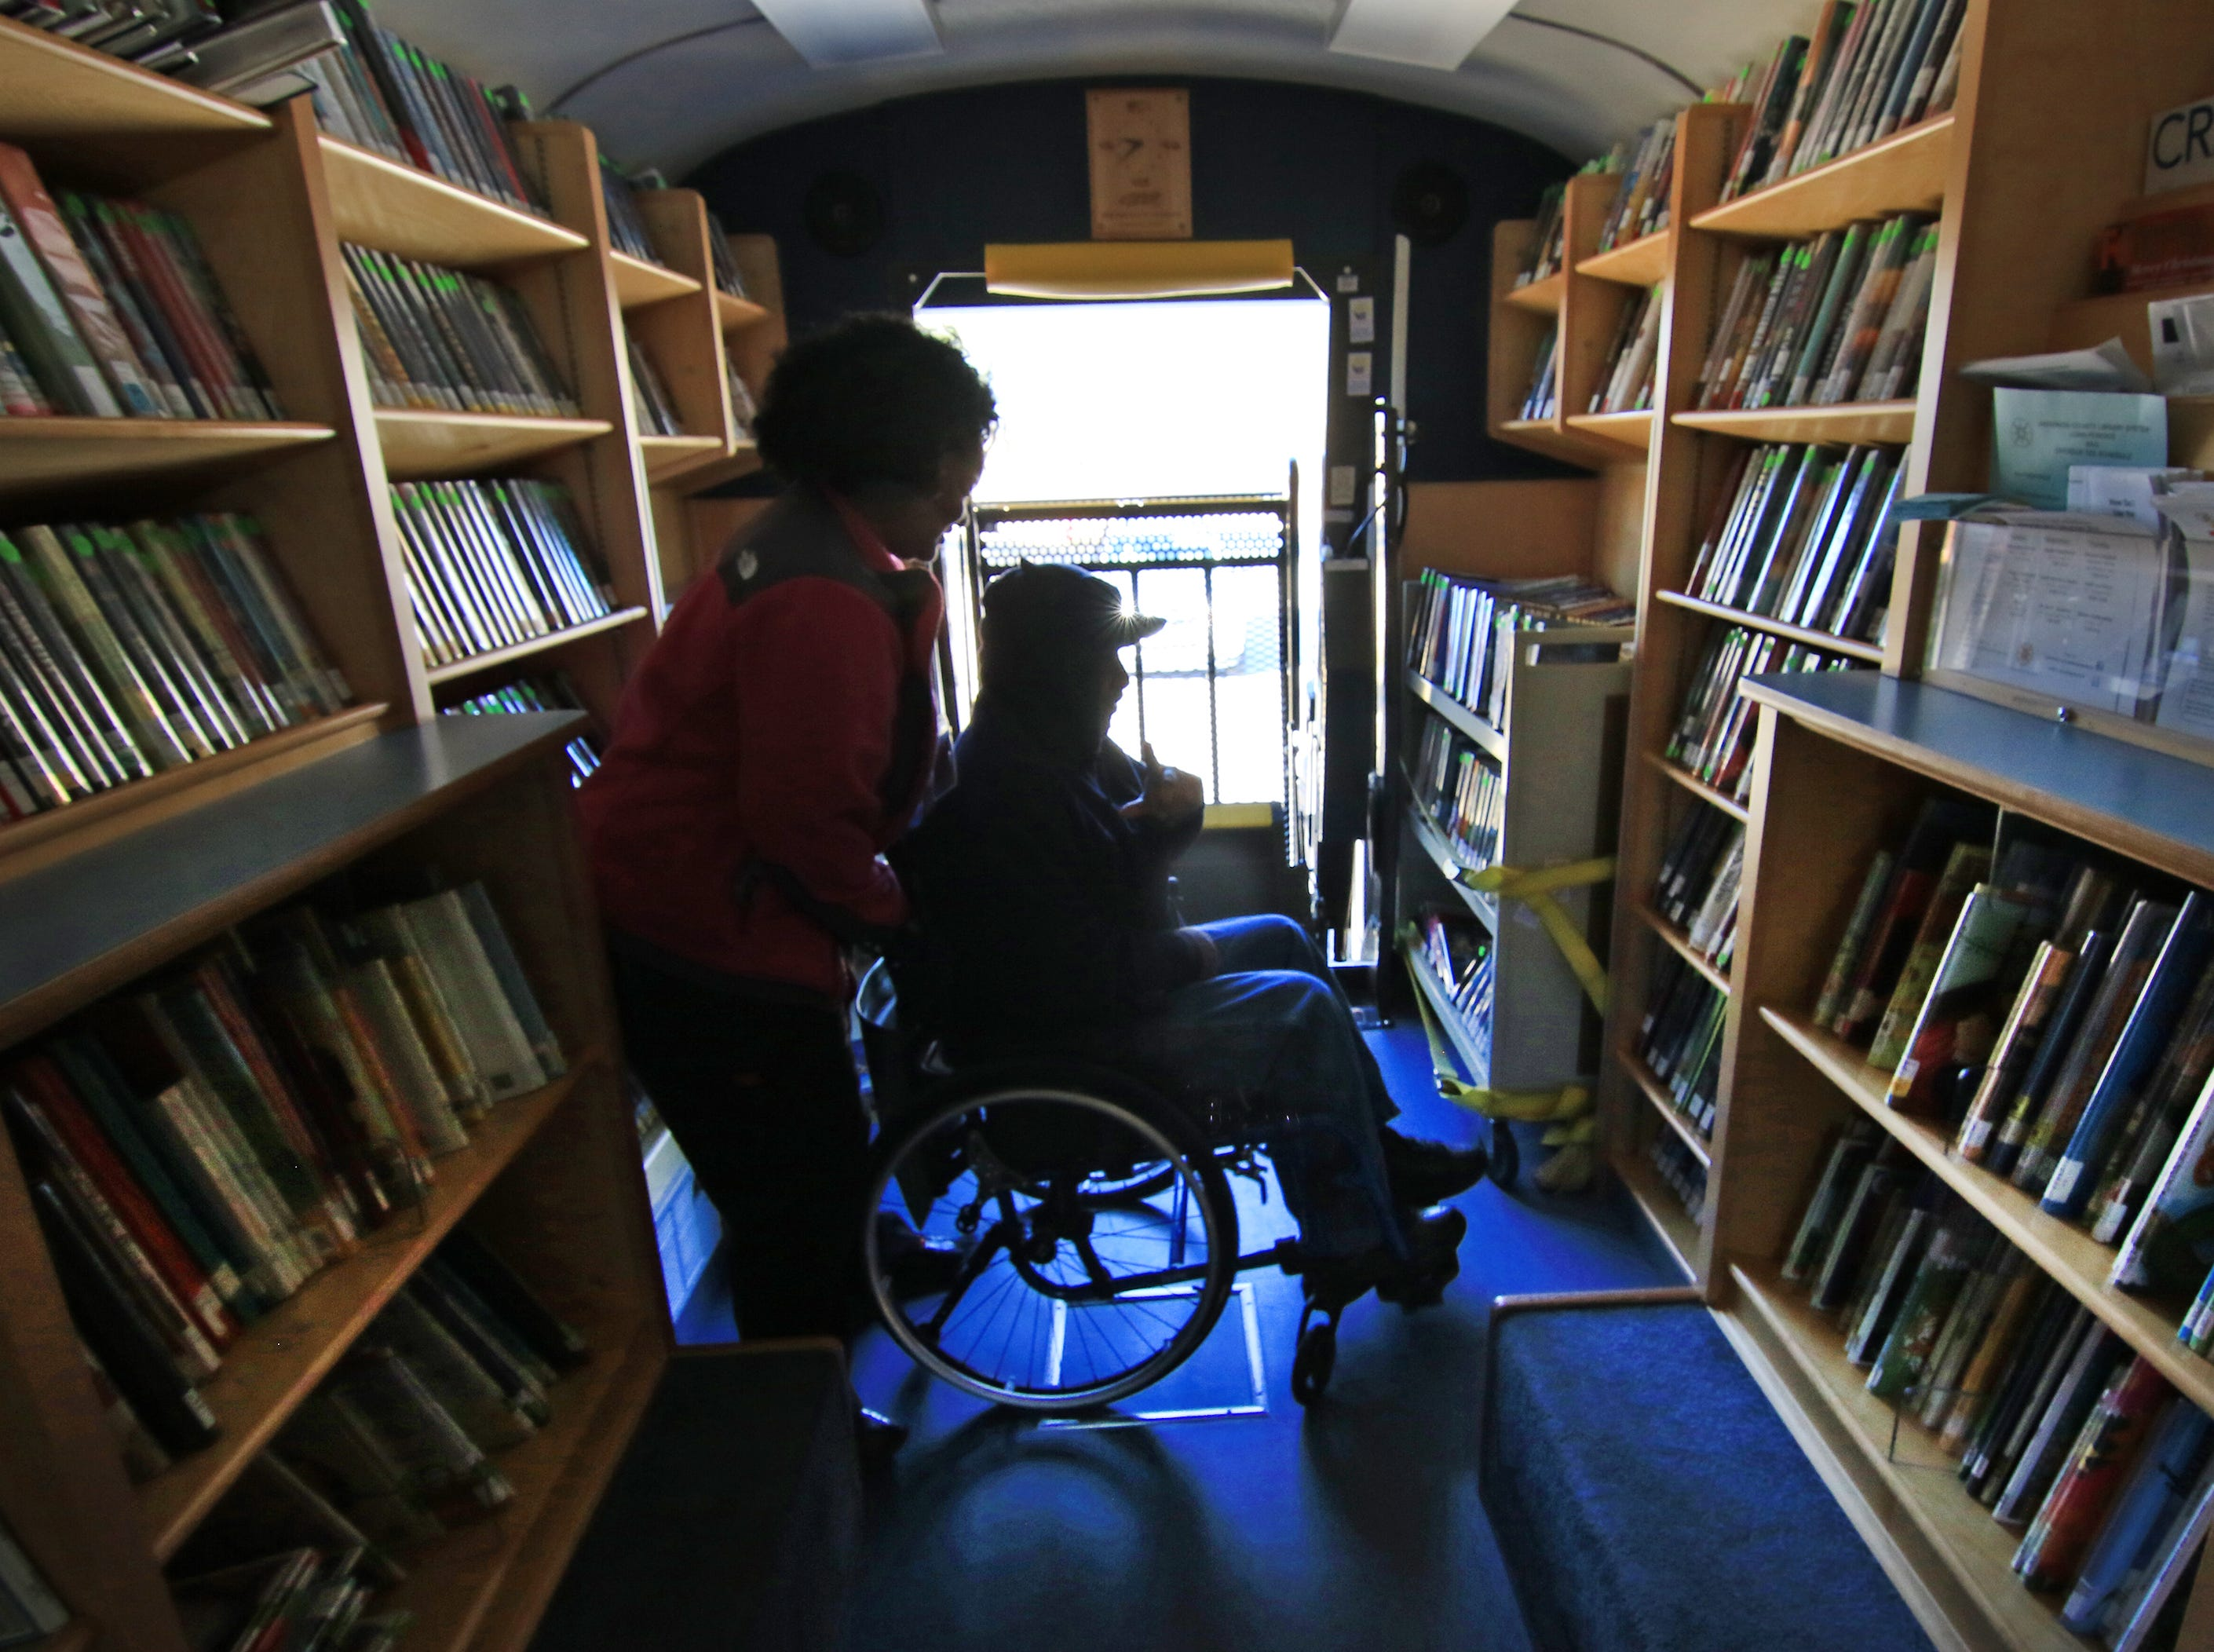 Kawanna Sullivan, left, helps George Pressley, U.S. Marine Corps veteran, through the Anderson County Library Bookmobile after finding movies and books he likes, in the parking lot of the Richard M. Campbell Veterans Nursing Home in Anderson in 2015.